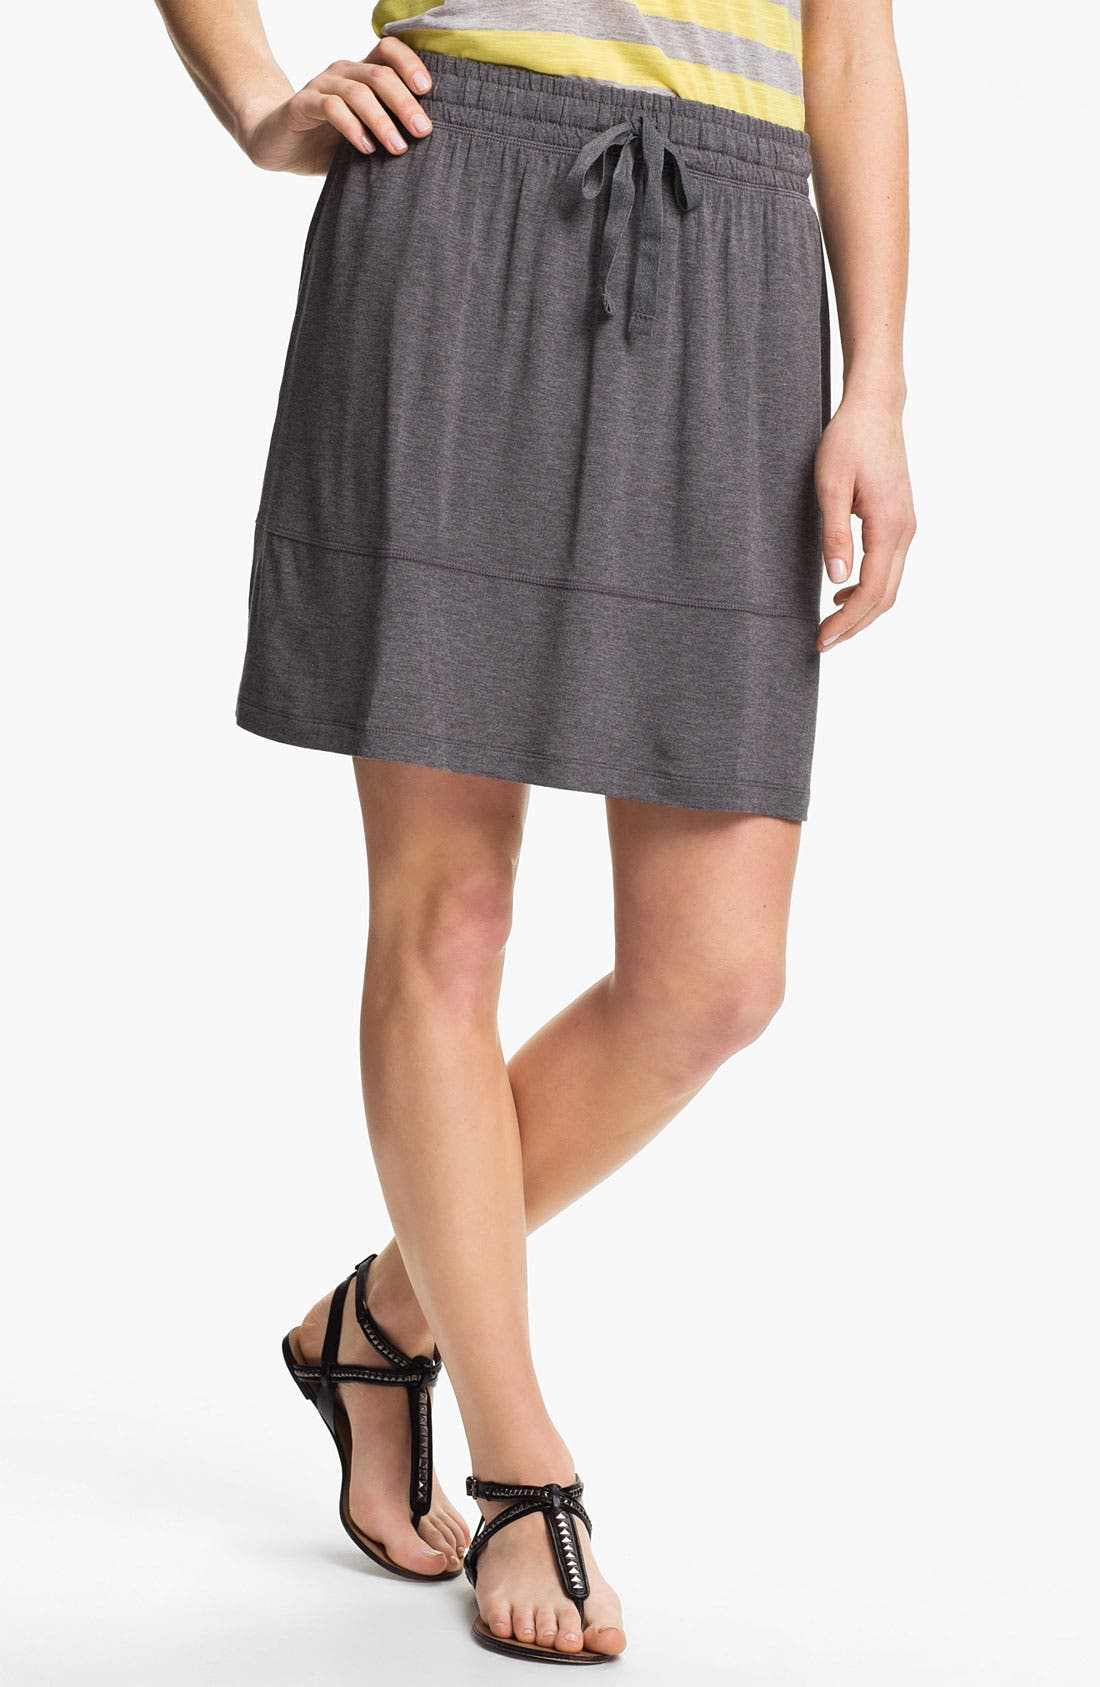 Alternate Image 1 Selected - Caslon Drawstring Short Skirt